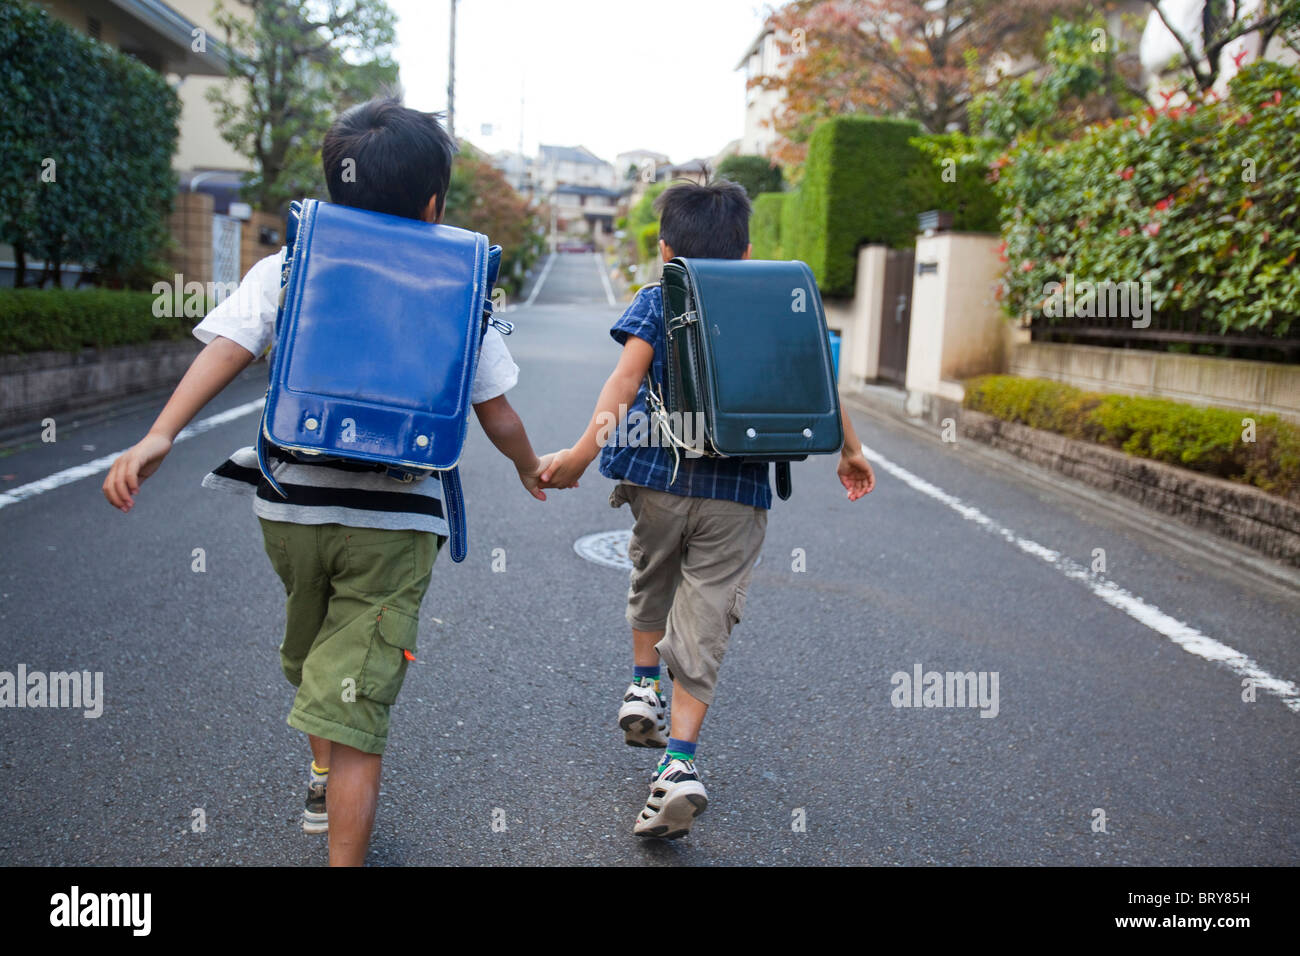 Boys holding hands and running, Tokyo Prefecture, Honshu, Japan Stock Photo